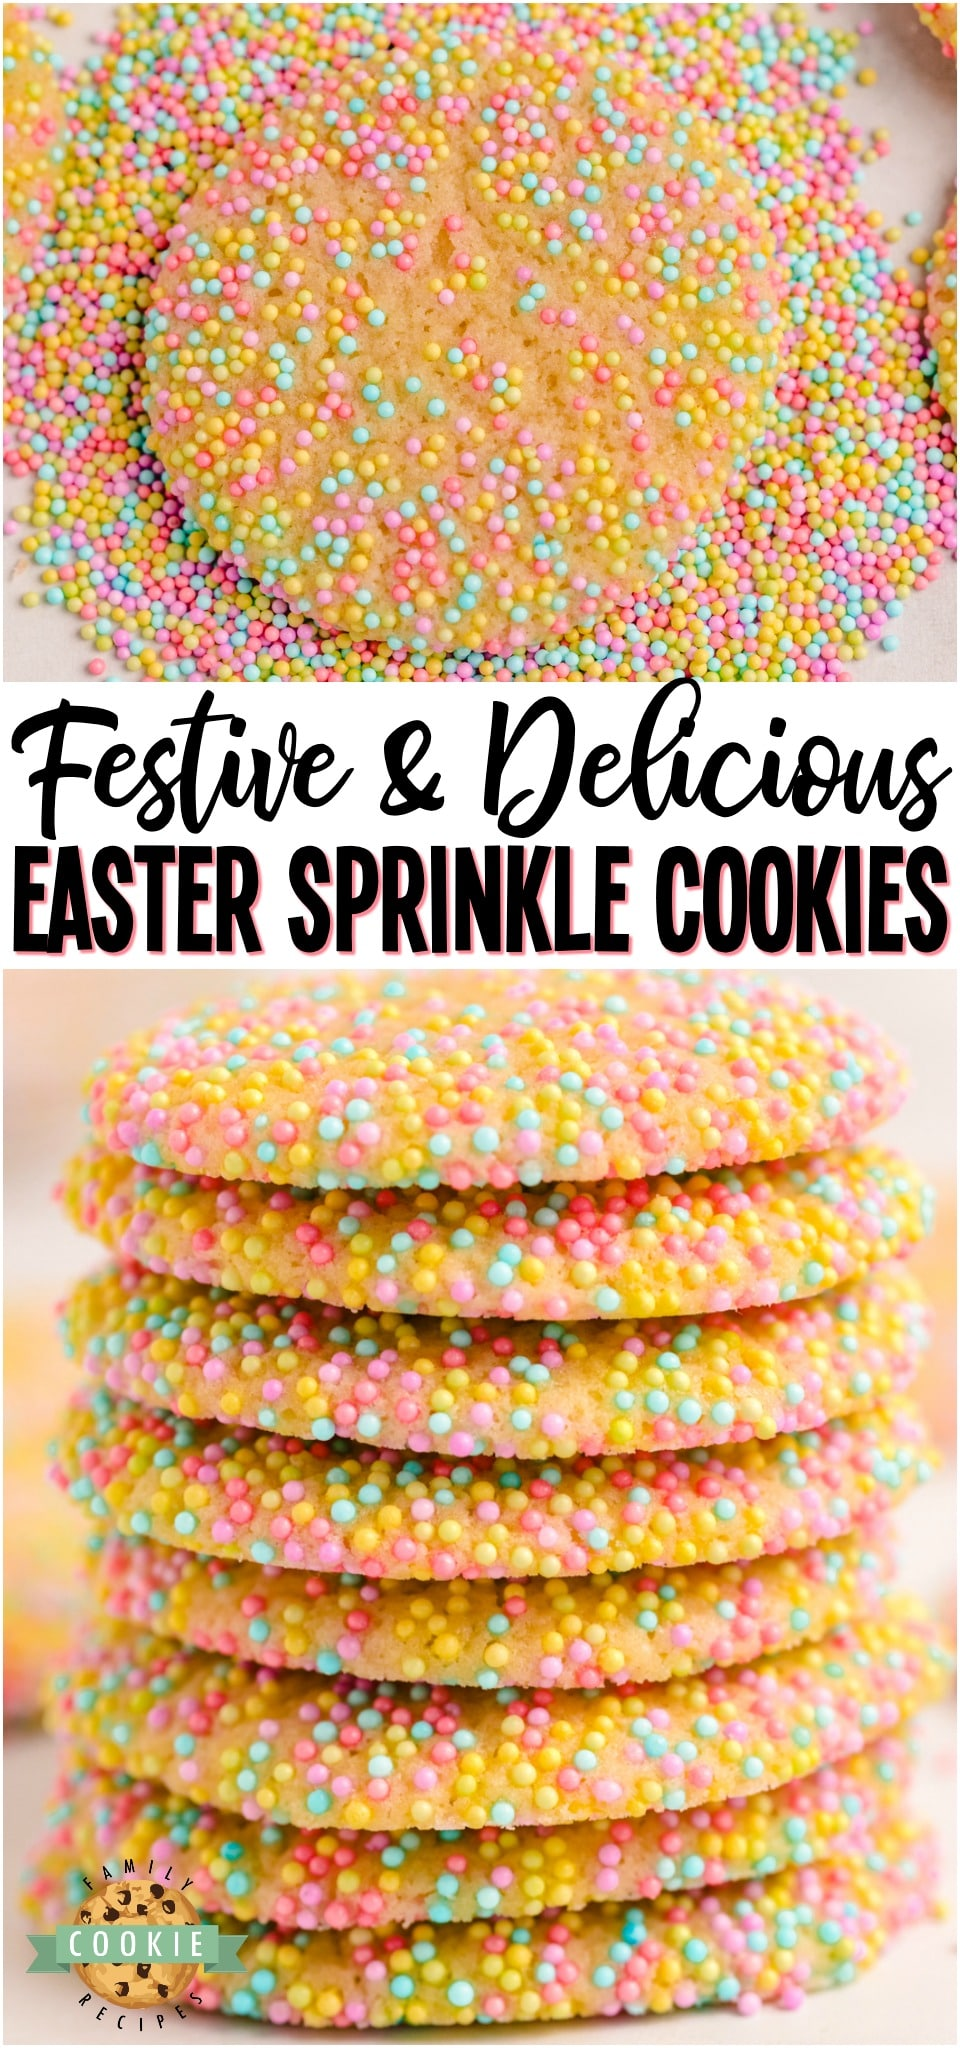 Easter Sprinkle Cookies are a great way to celebrate the holiday with a sweet treat. The colorful sprinkles on a soft and chewy sugar cookie make for a delicious snack that looks as good as it tastes! #Easter #Spring #summer #cookies #baking #Sprinkles #SprinkleCookies #cookies #dessert from FAMILY COOKIE RECIPES via @buttergirls